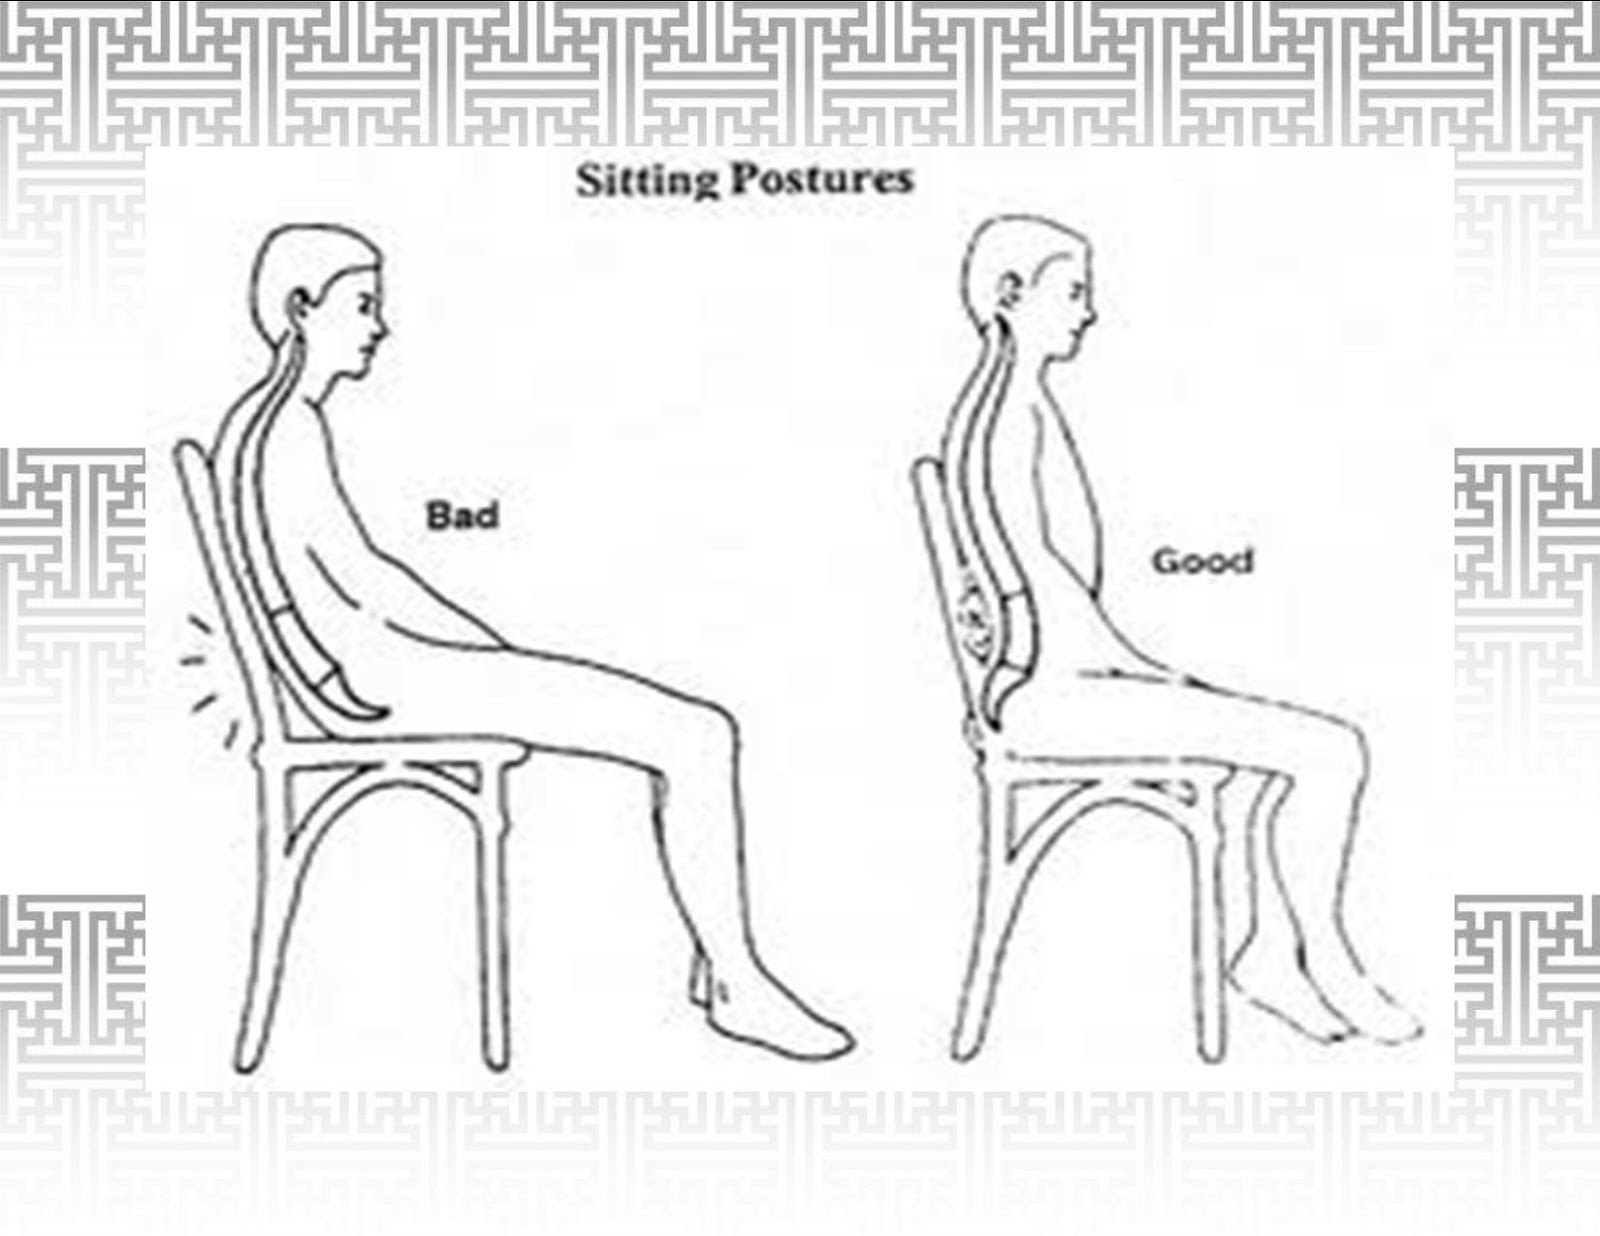 WellScript, LLC: 11 Great Benefits of Having Good Posture